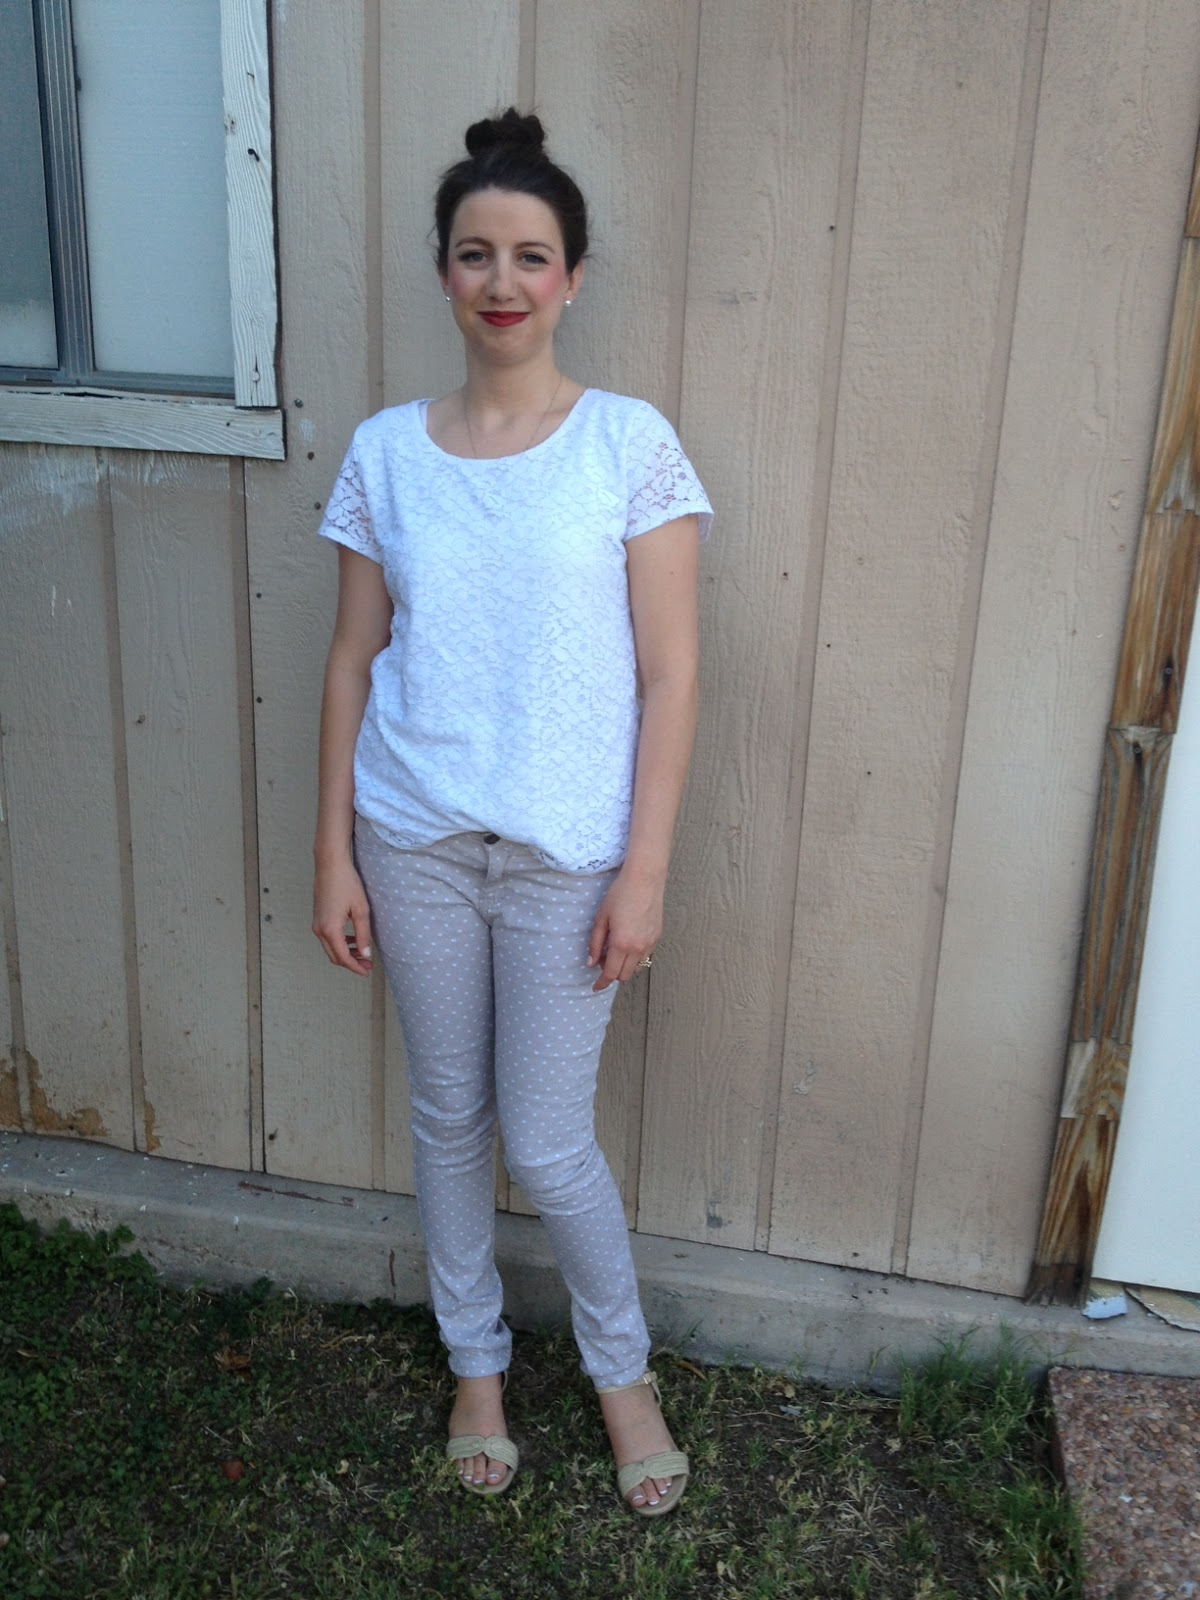 919a9095017 polka dot pants  Fallas Paredes ( 7.00) lace shirt  Wal-Mart ( 9.94) pearl  earrings  Forever 21 ( 2.80 for 10 pairs of pearls)